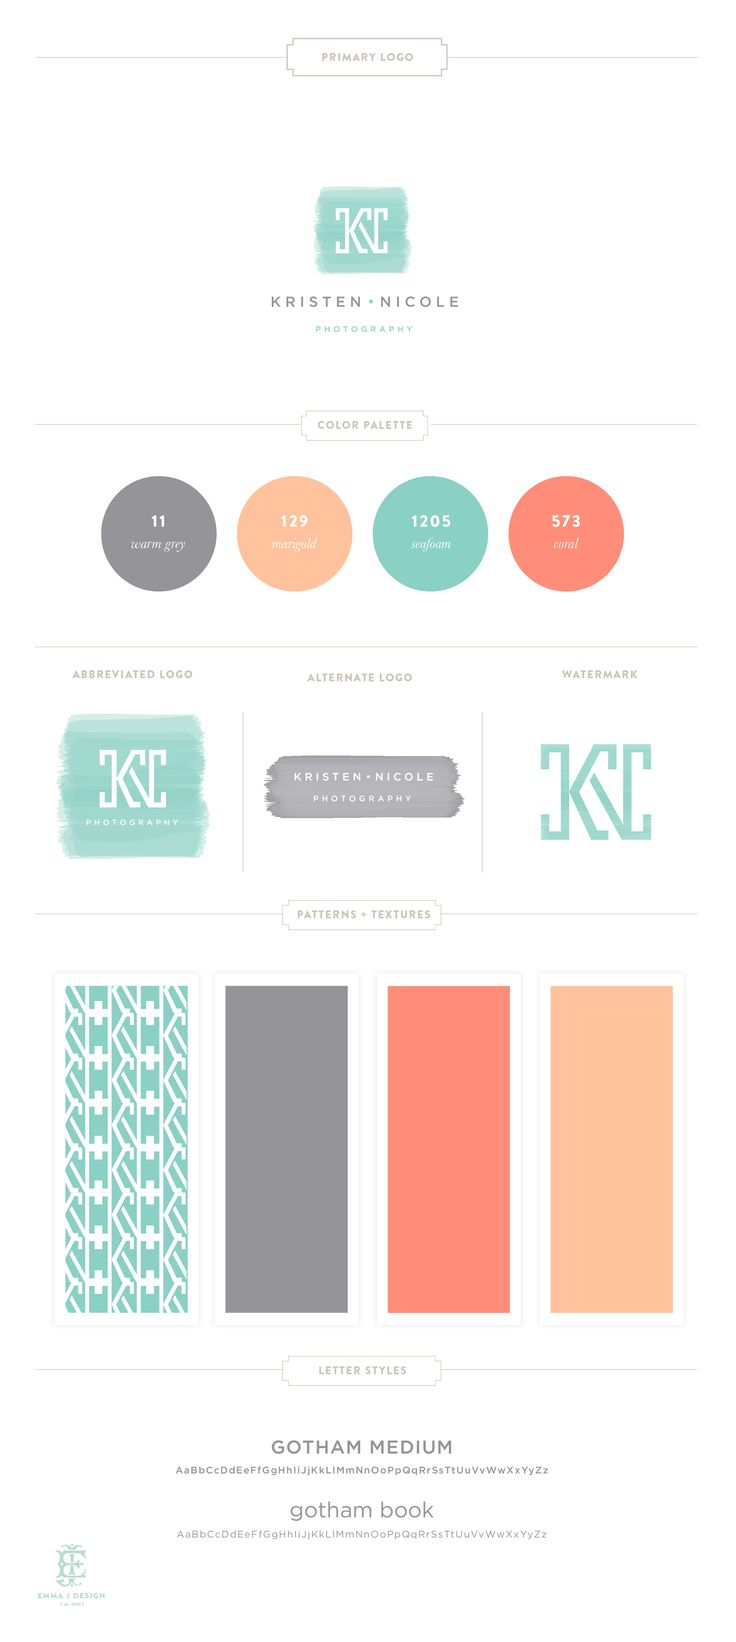 #branding - the colors are a beautiful combination